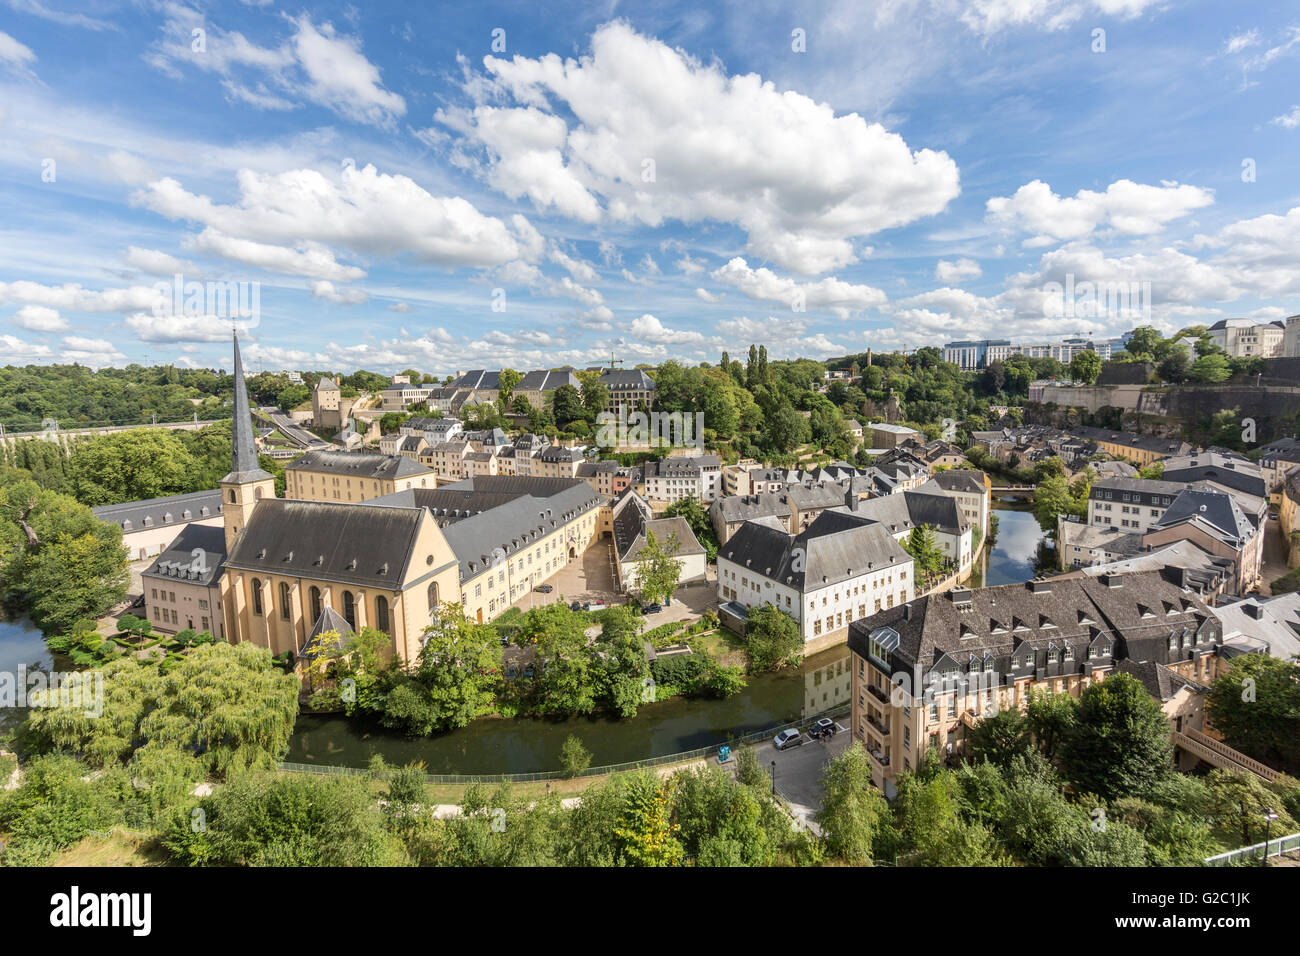 View over capital city, Luxembourg - Stock Image